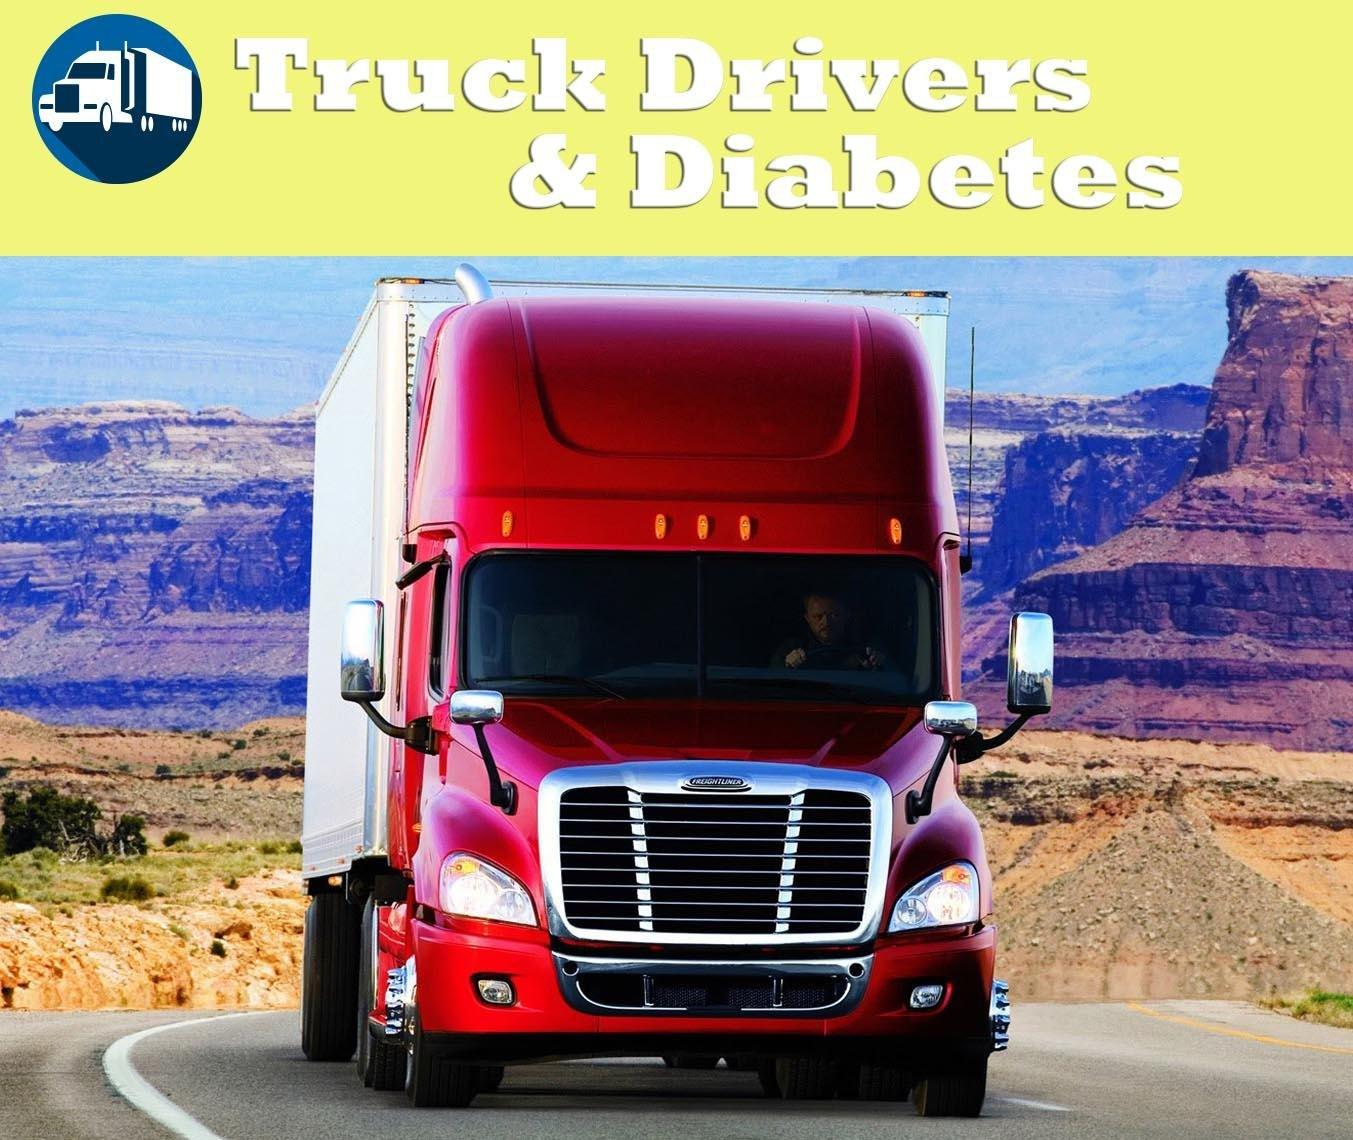 Commercial Truck Driving And Diabetes: Can You Become Truck Driver With Diabetes